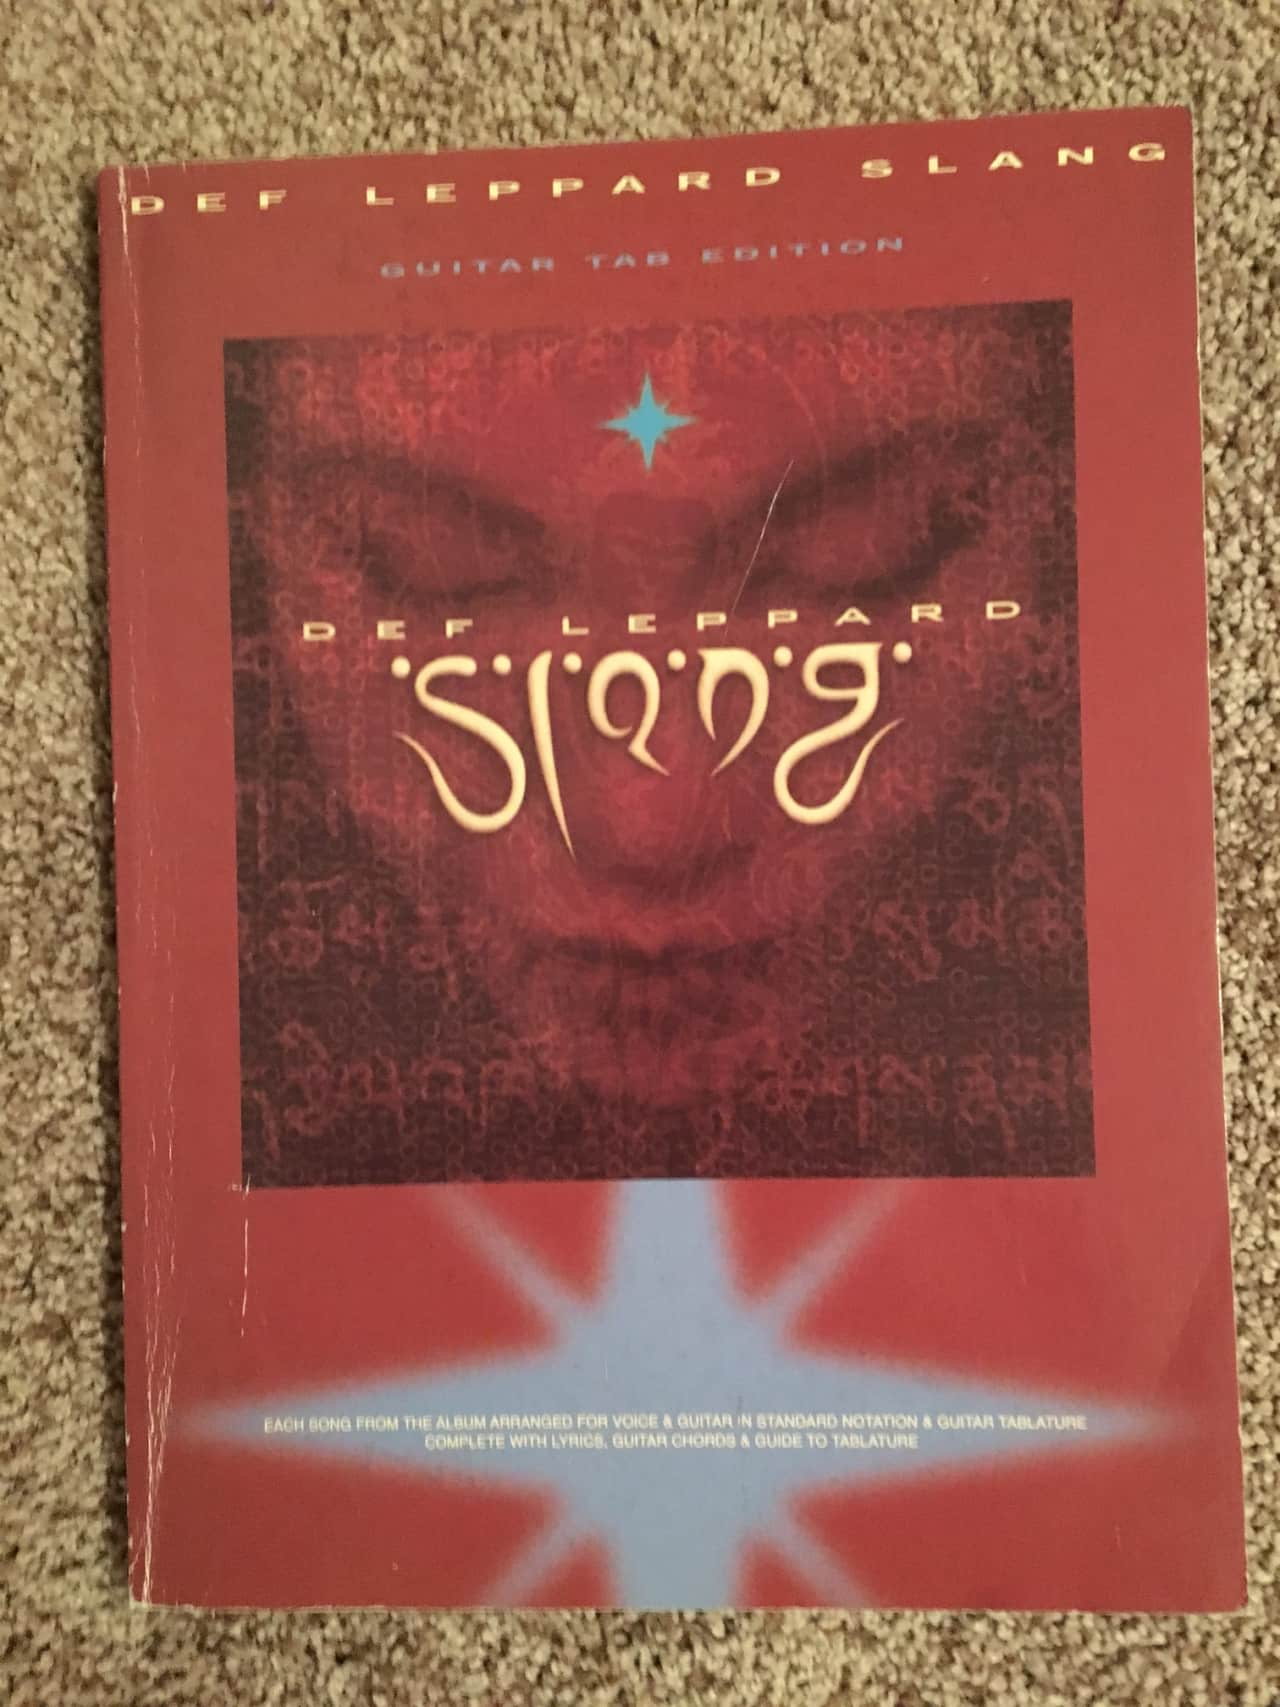 Def Leppard Slang Guitar Tab Tablature Book Reverb